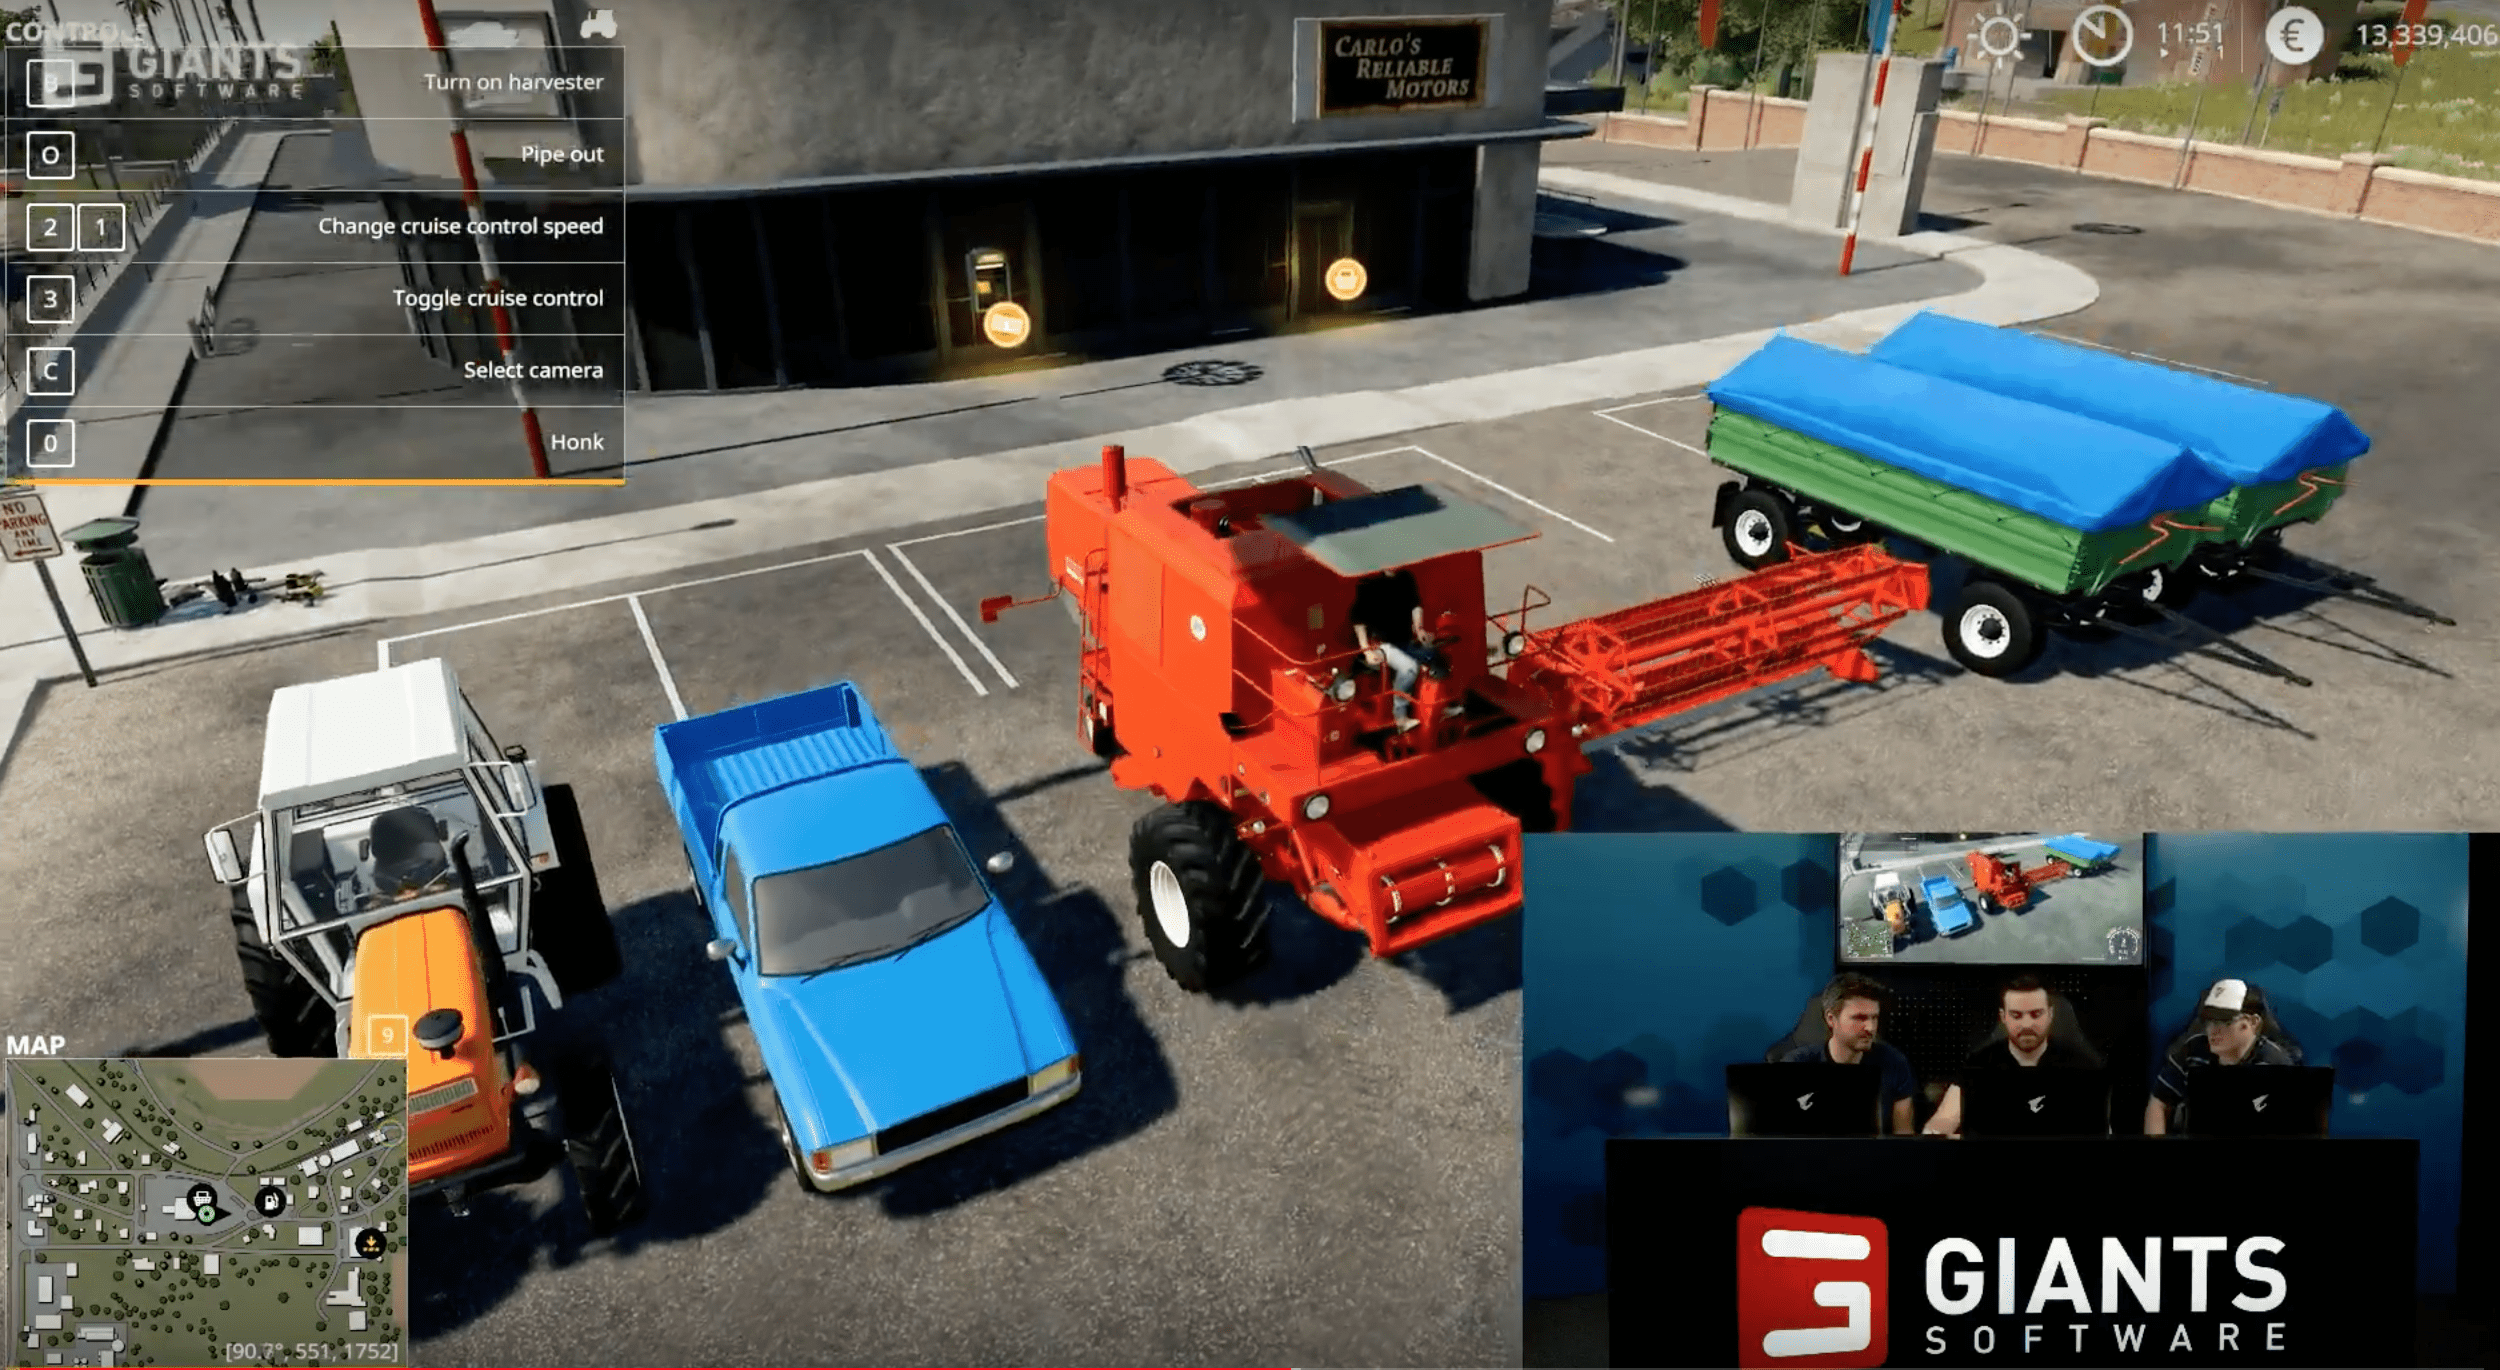 Farming Simulator 19: Buildings, Combines, Vehicles, Maps